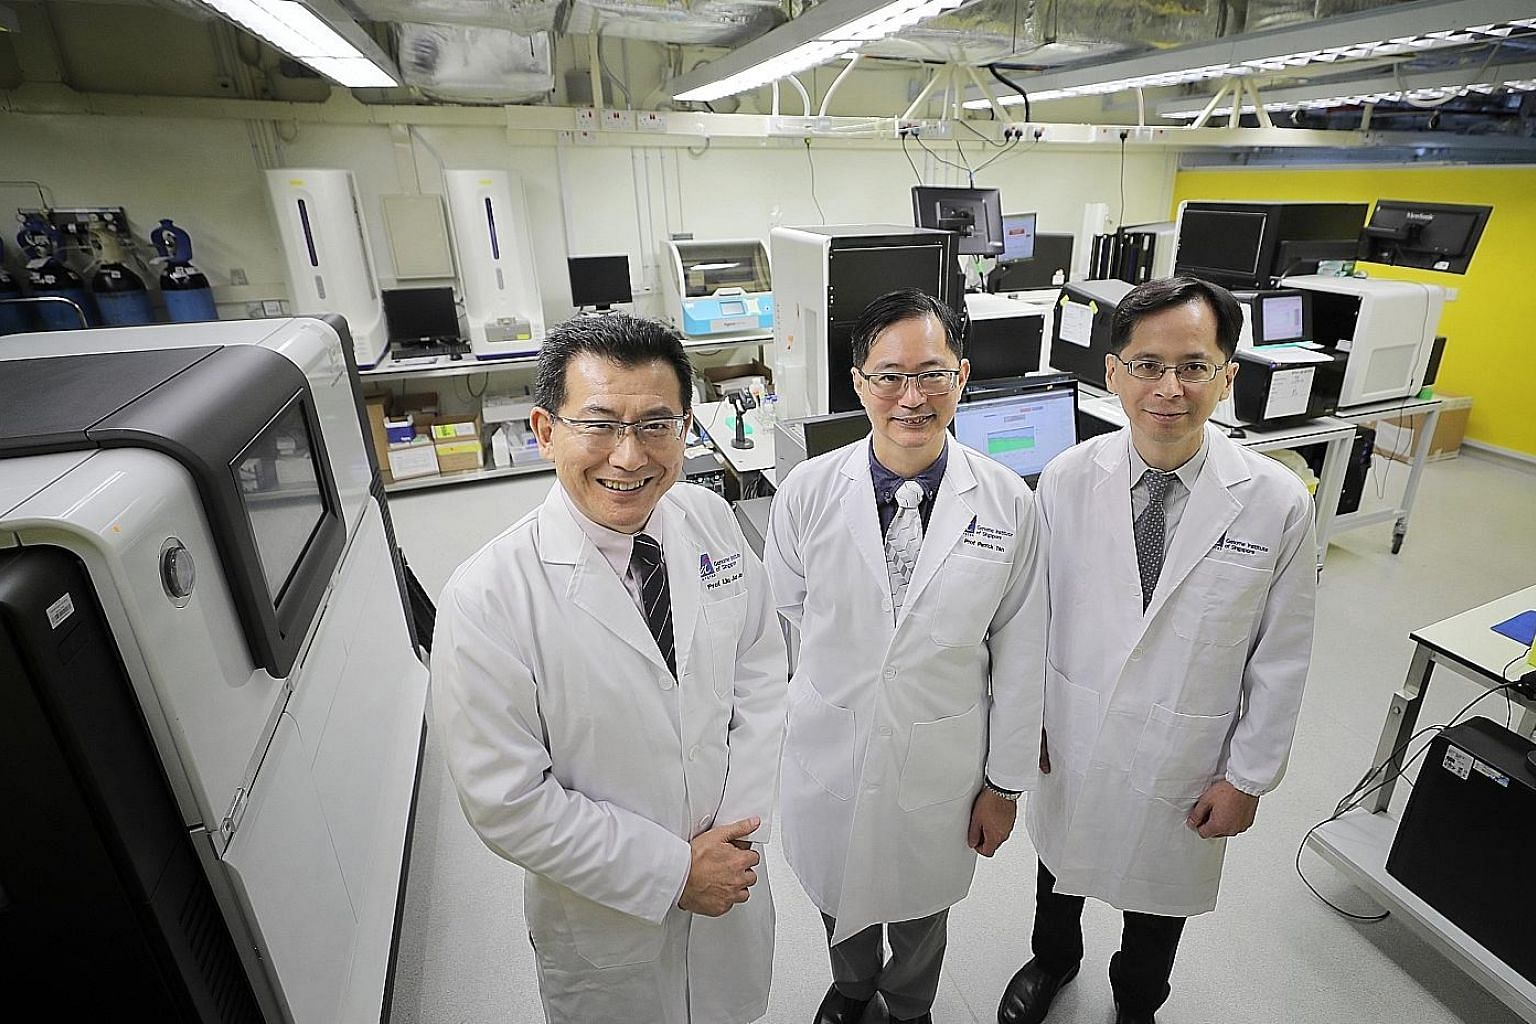 (From left) Prof Liu Jianjun, deputy executive director and senior group leader (human genetics) at the Genome Institute of Singapore (GIS); Prof Patrick Tan, GIS executive director; and Prof Cheng Ching-Yu, principal clinician scientist at the Singa